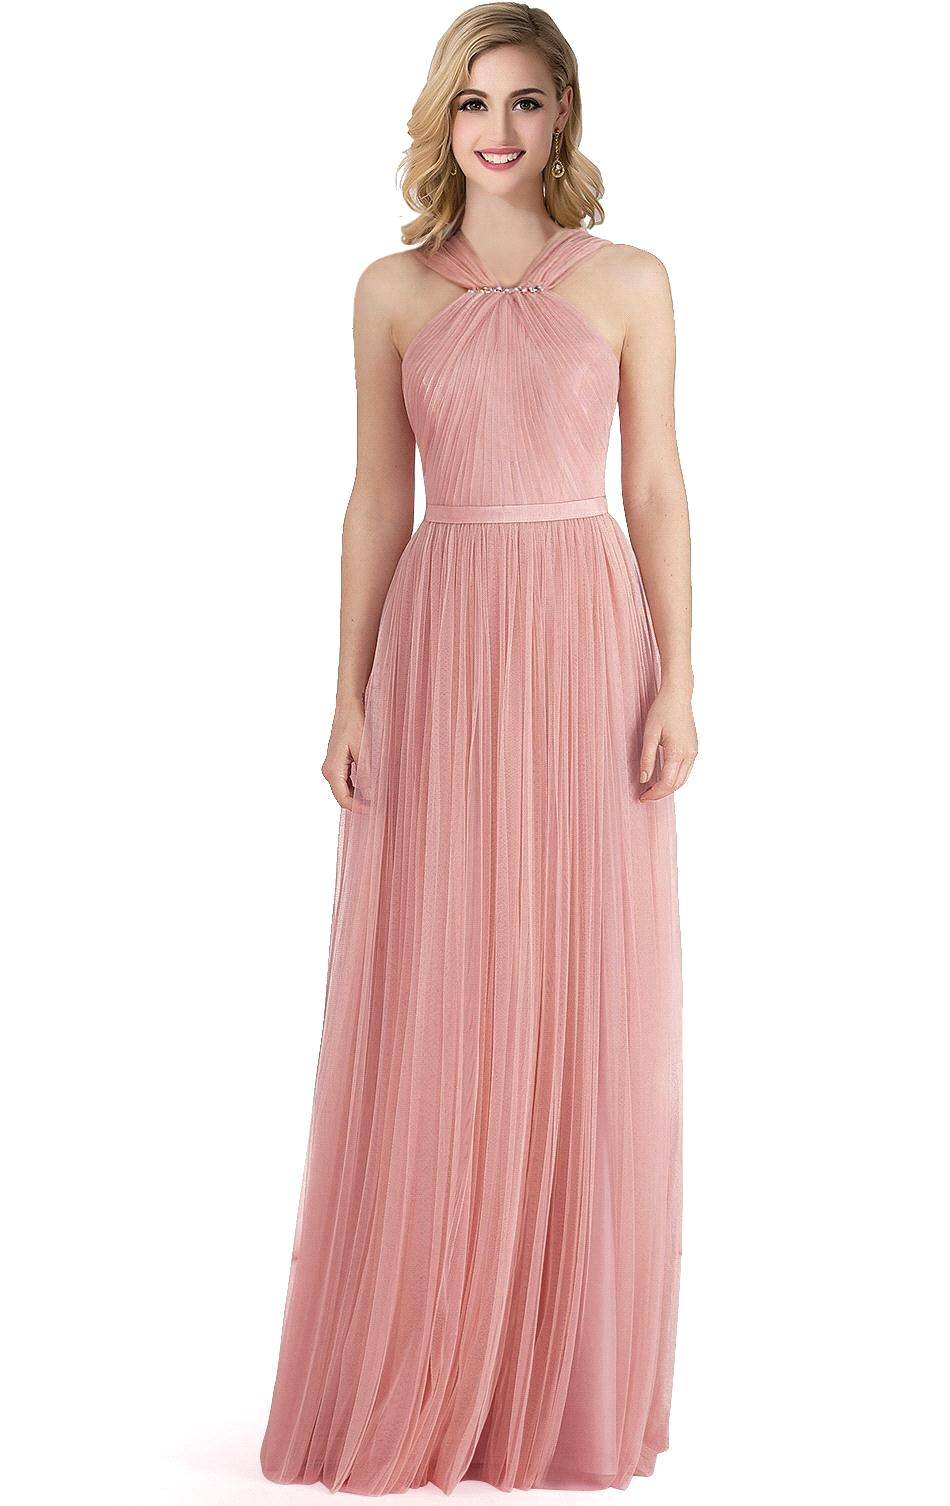 Online get cheap cheap bridesmaid dresses under 50 with sleeves cheap bridesmaid dresses under 50 pink vestido de festa long chiffon sash bridesmaid dresseschina ombrellifo Choice Image